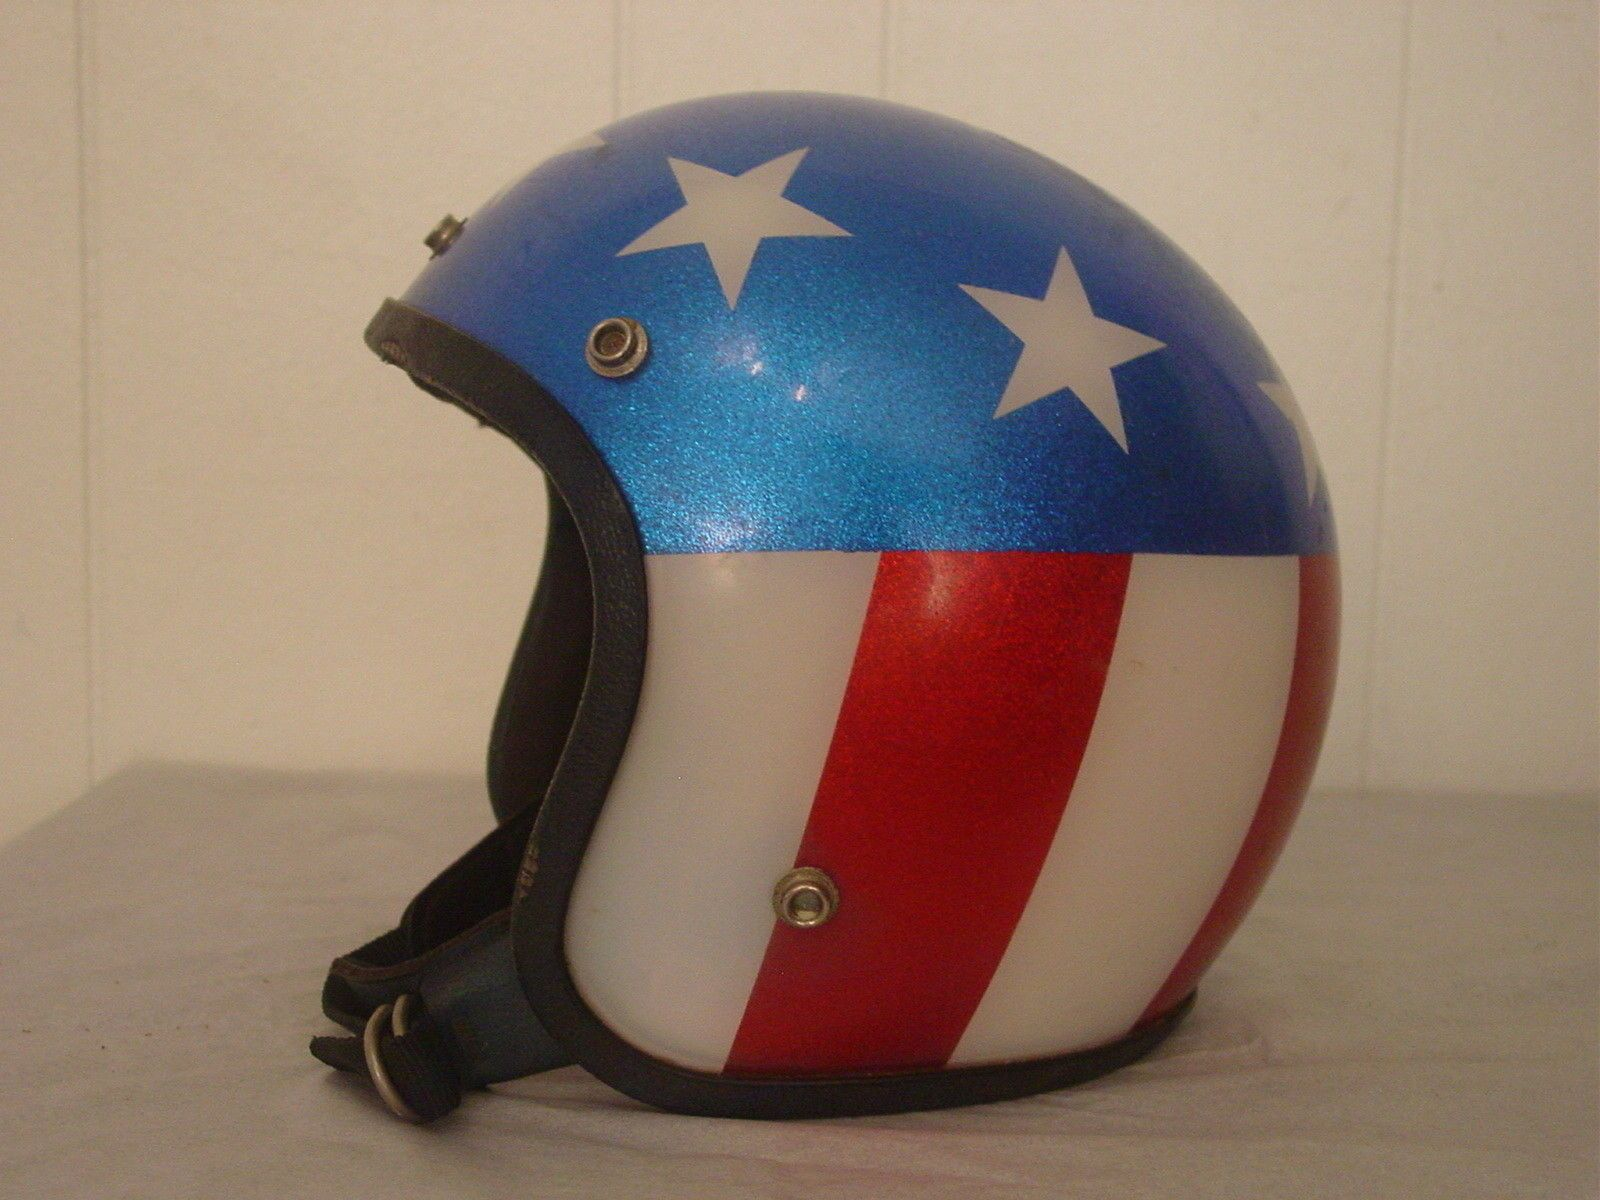 Details about Vintage Motorcycle Helmet Easy Rider Stars & Stripes